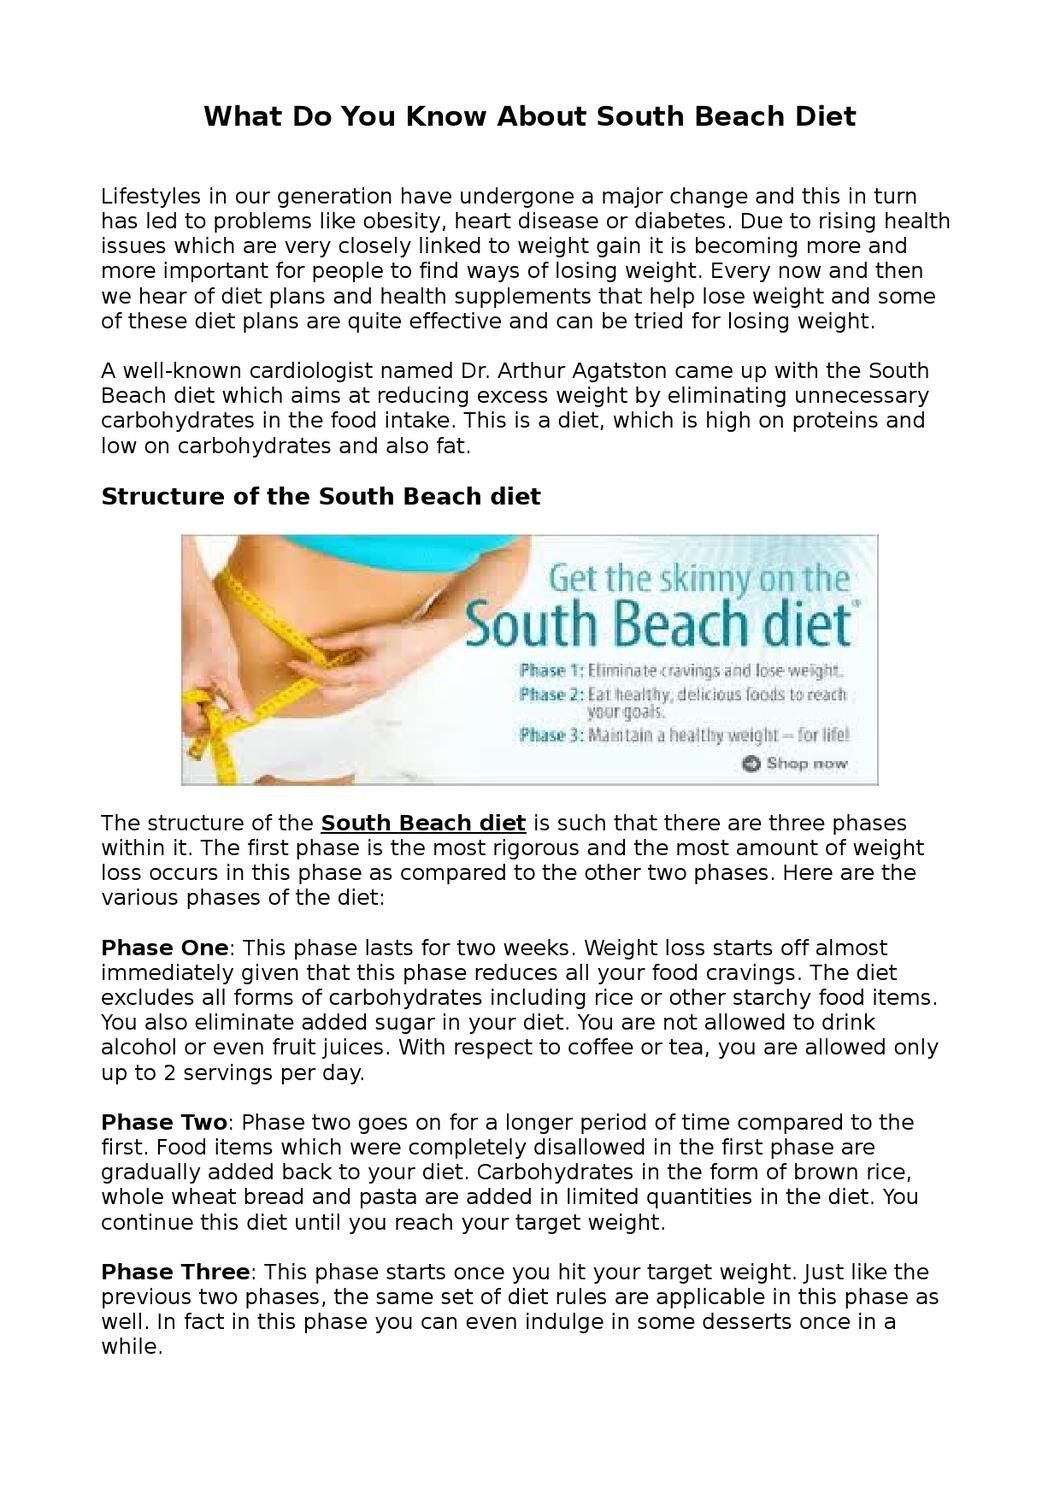 south beach diet tea in phase 1?